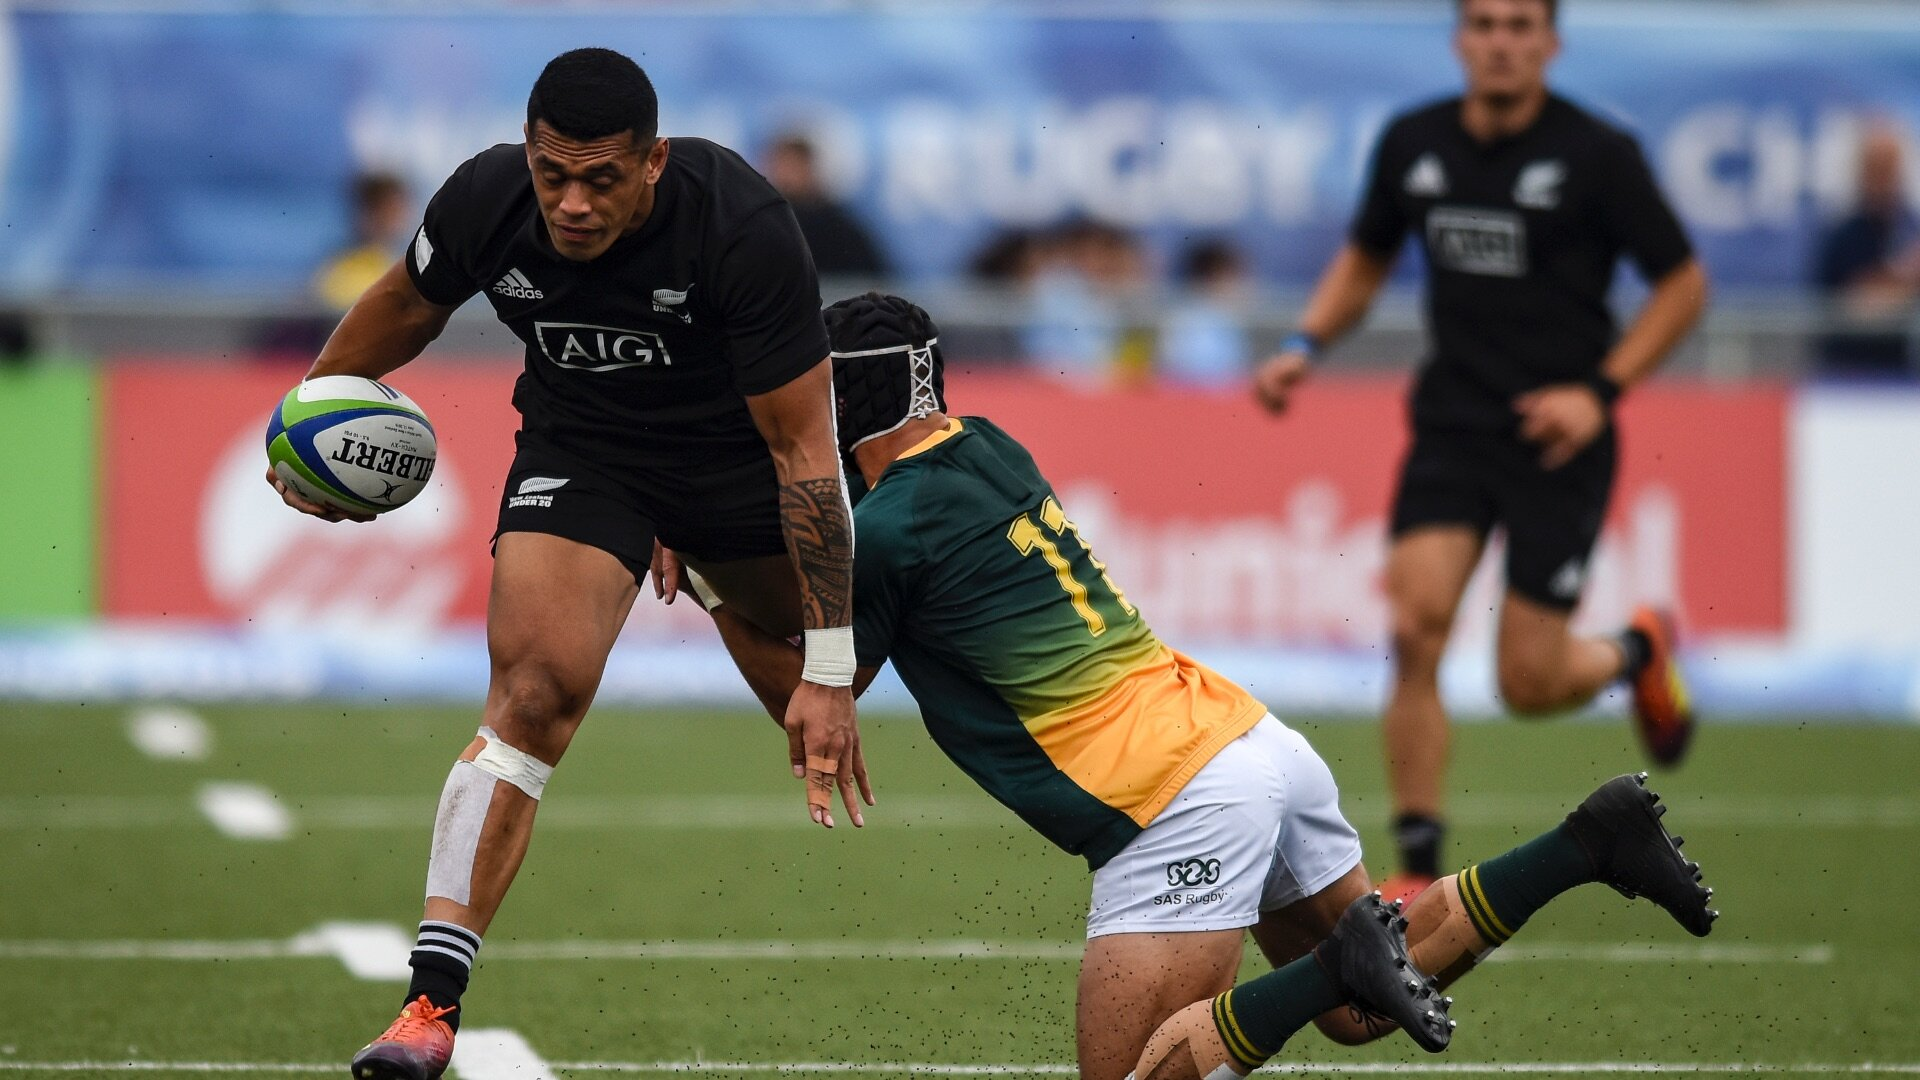 Dramatic day ends with New Zealand failing to make the Under-20 semi-finals